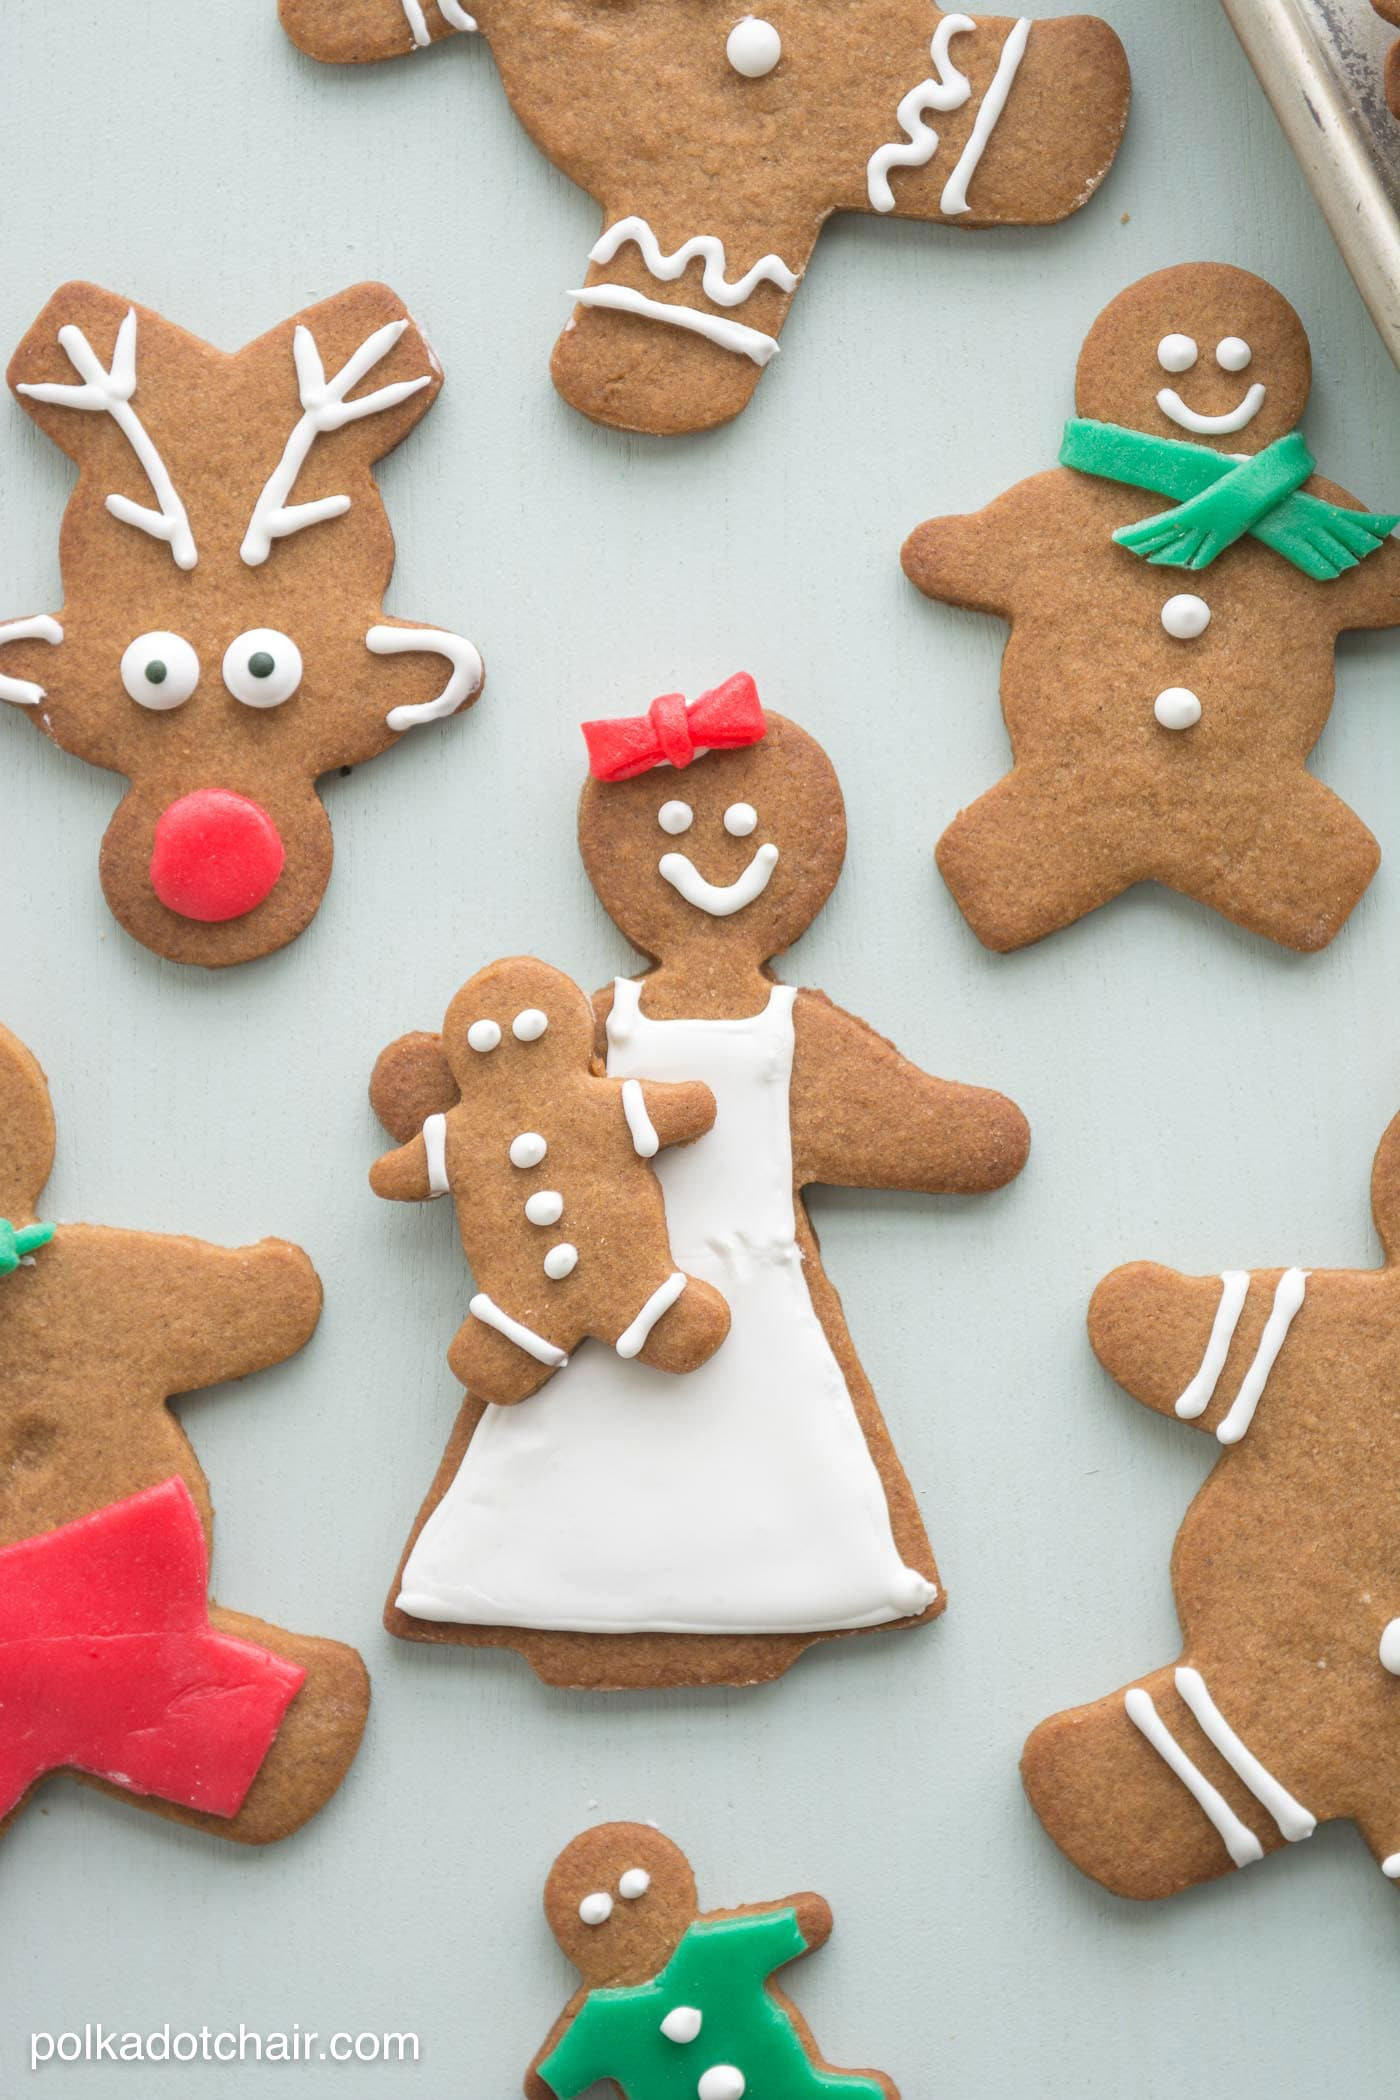 Ginger Bread Christmas Cookies  Gingerbread Cookie Decorating Ideas The Polka Dot Chair